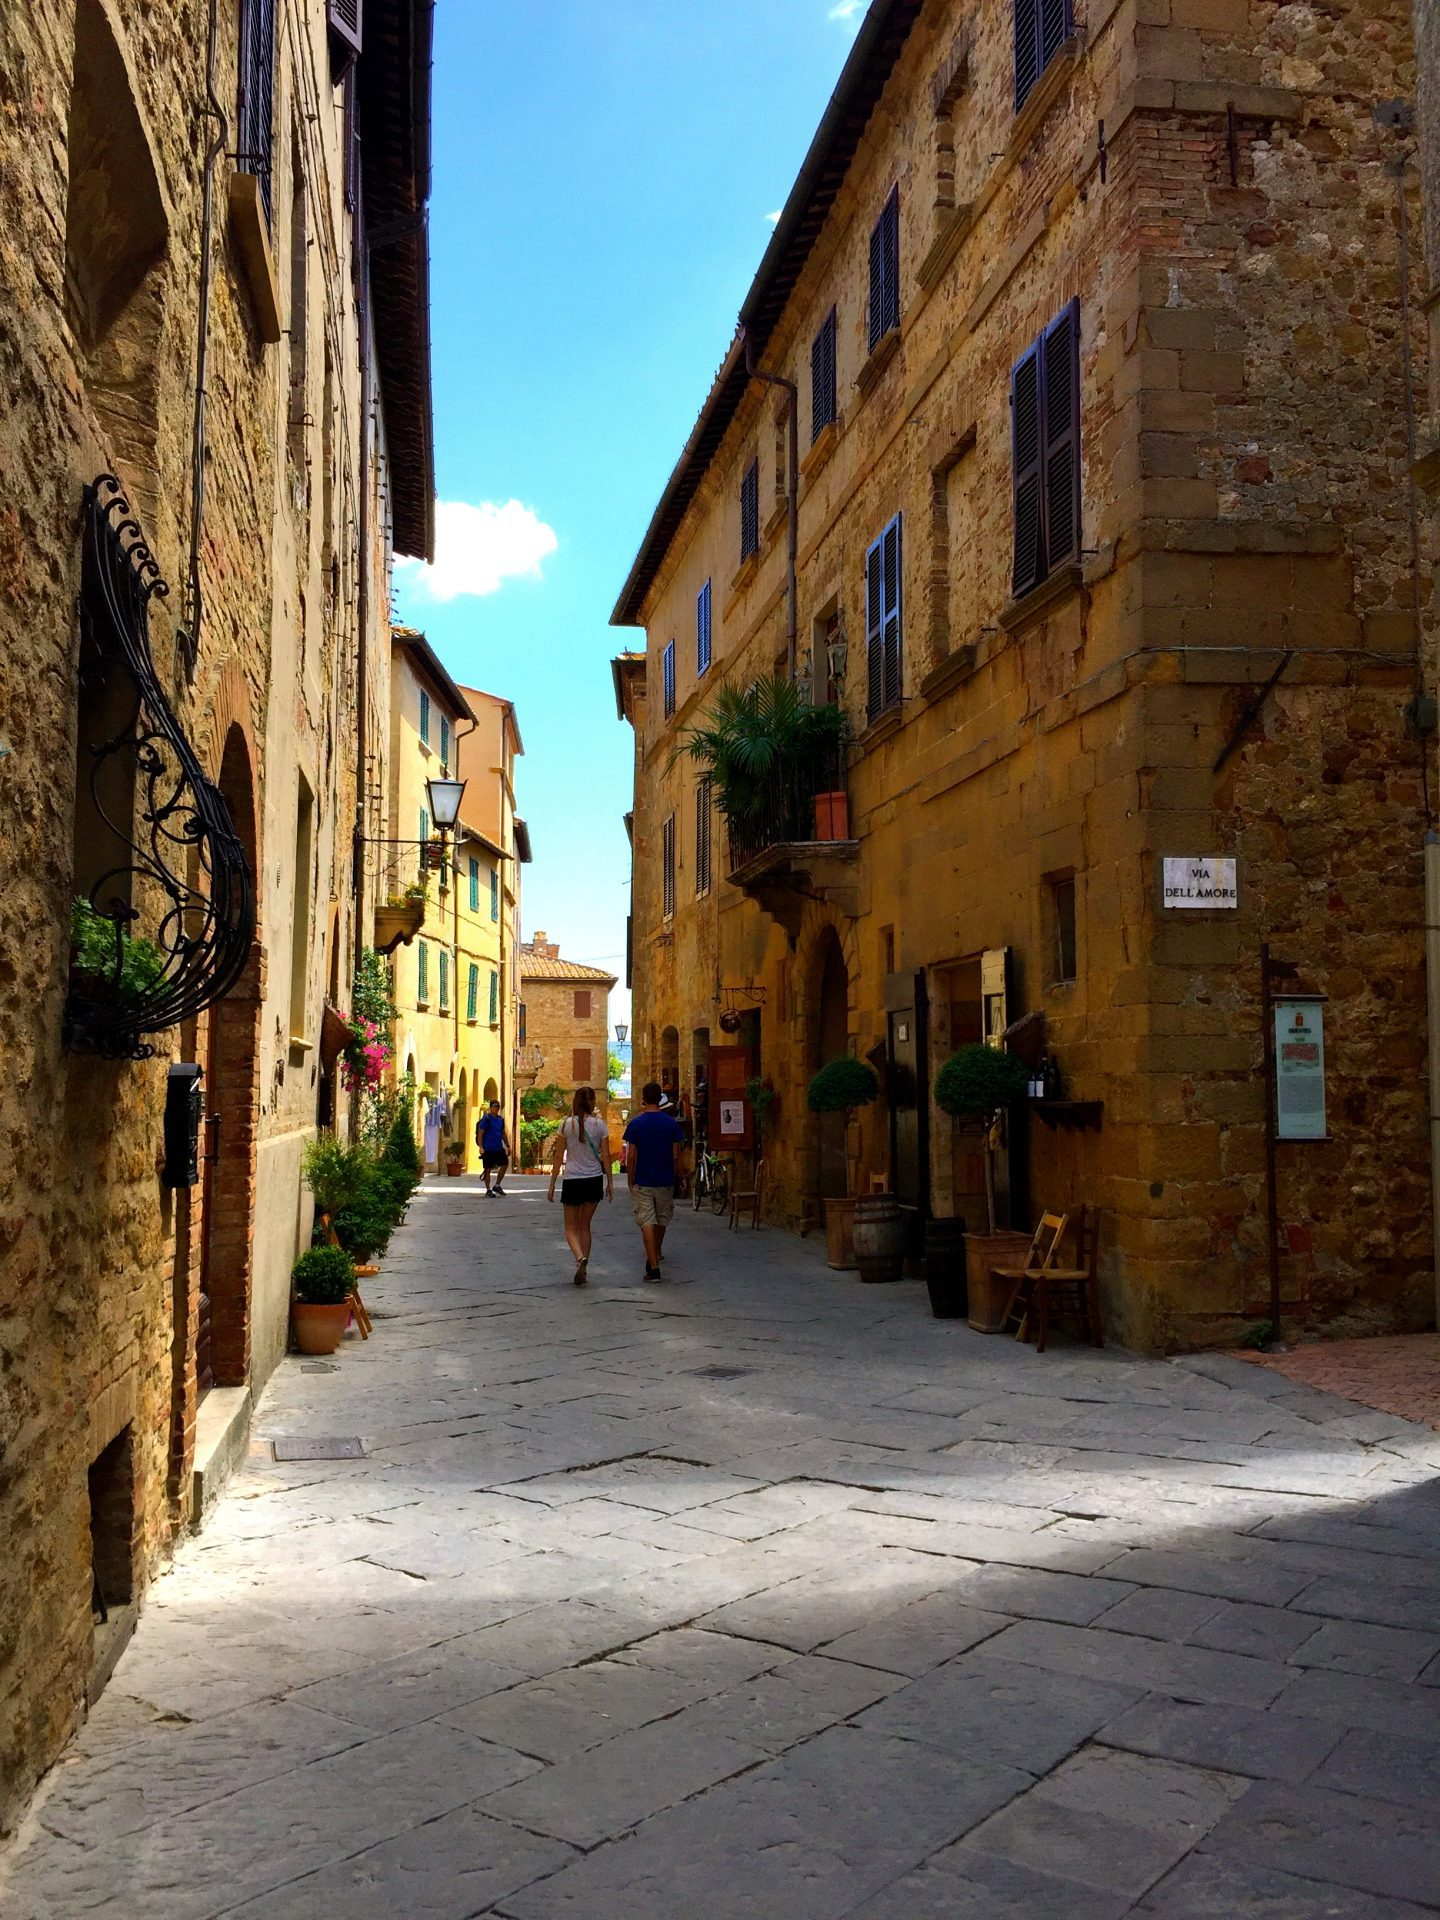 Walking around in Pienza Tuscany.